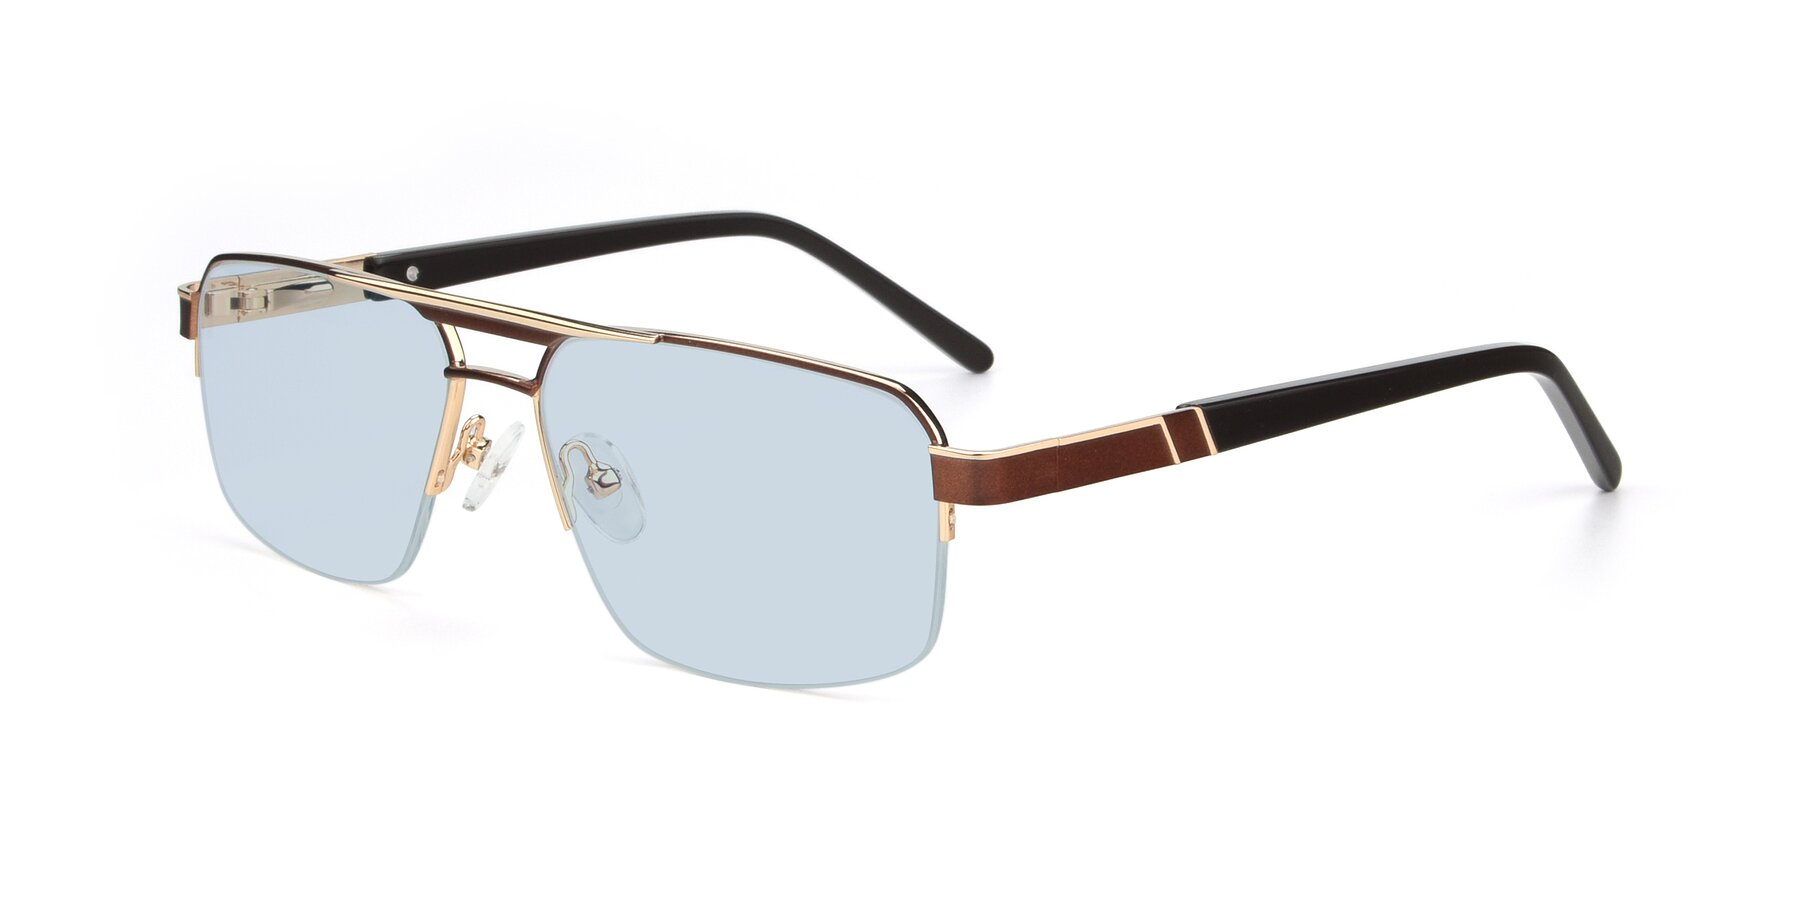 Angle of 19004 in Bronze-Gold with Light Blue Tinted Lenses